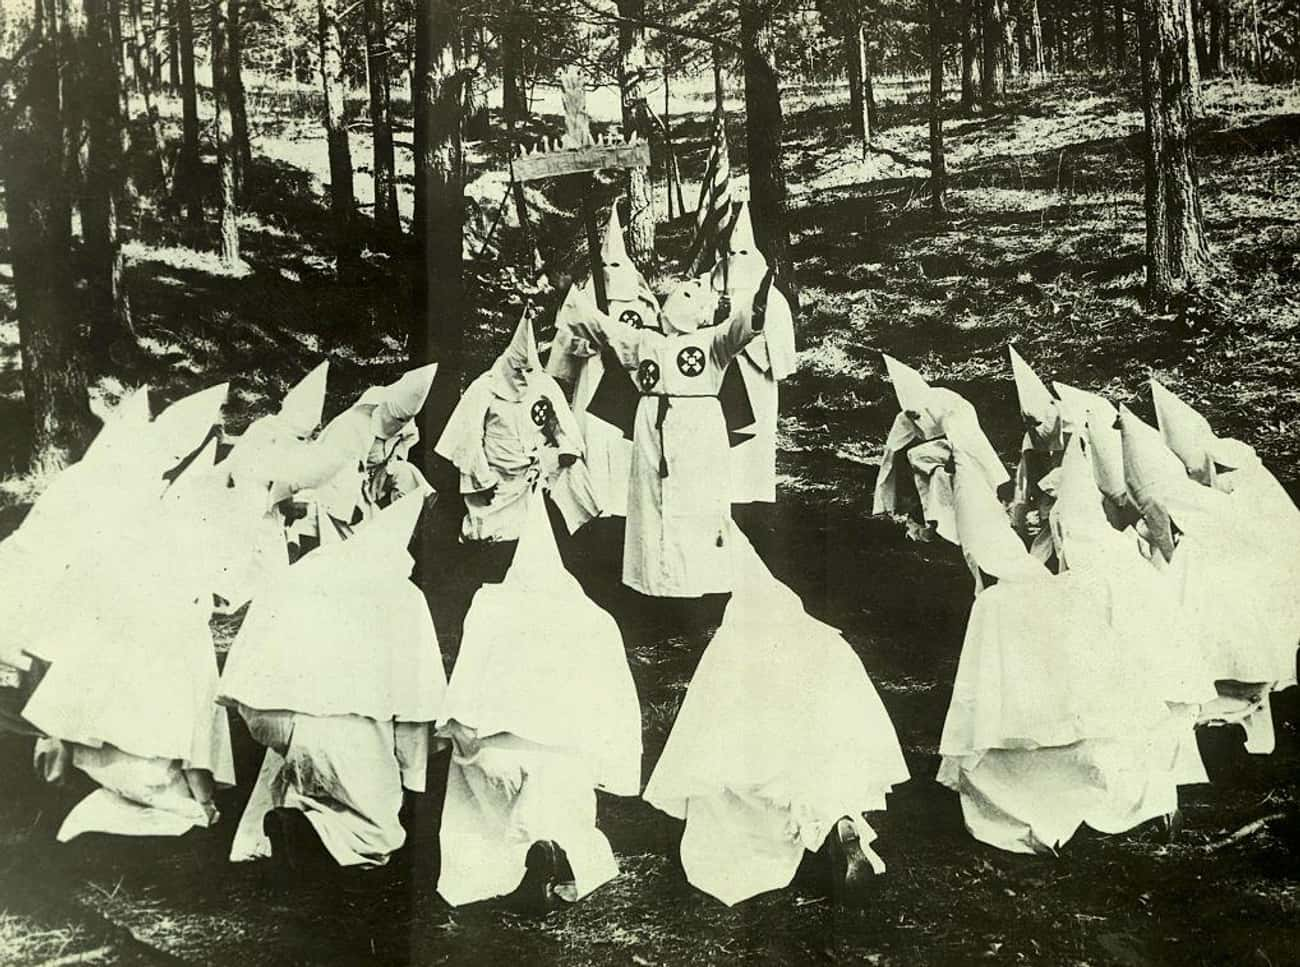 Klan Rally Forms A Circle is listed (or ranked) 3 on the list 18 Disturbing Photos Of KKK Rallies